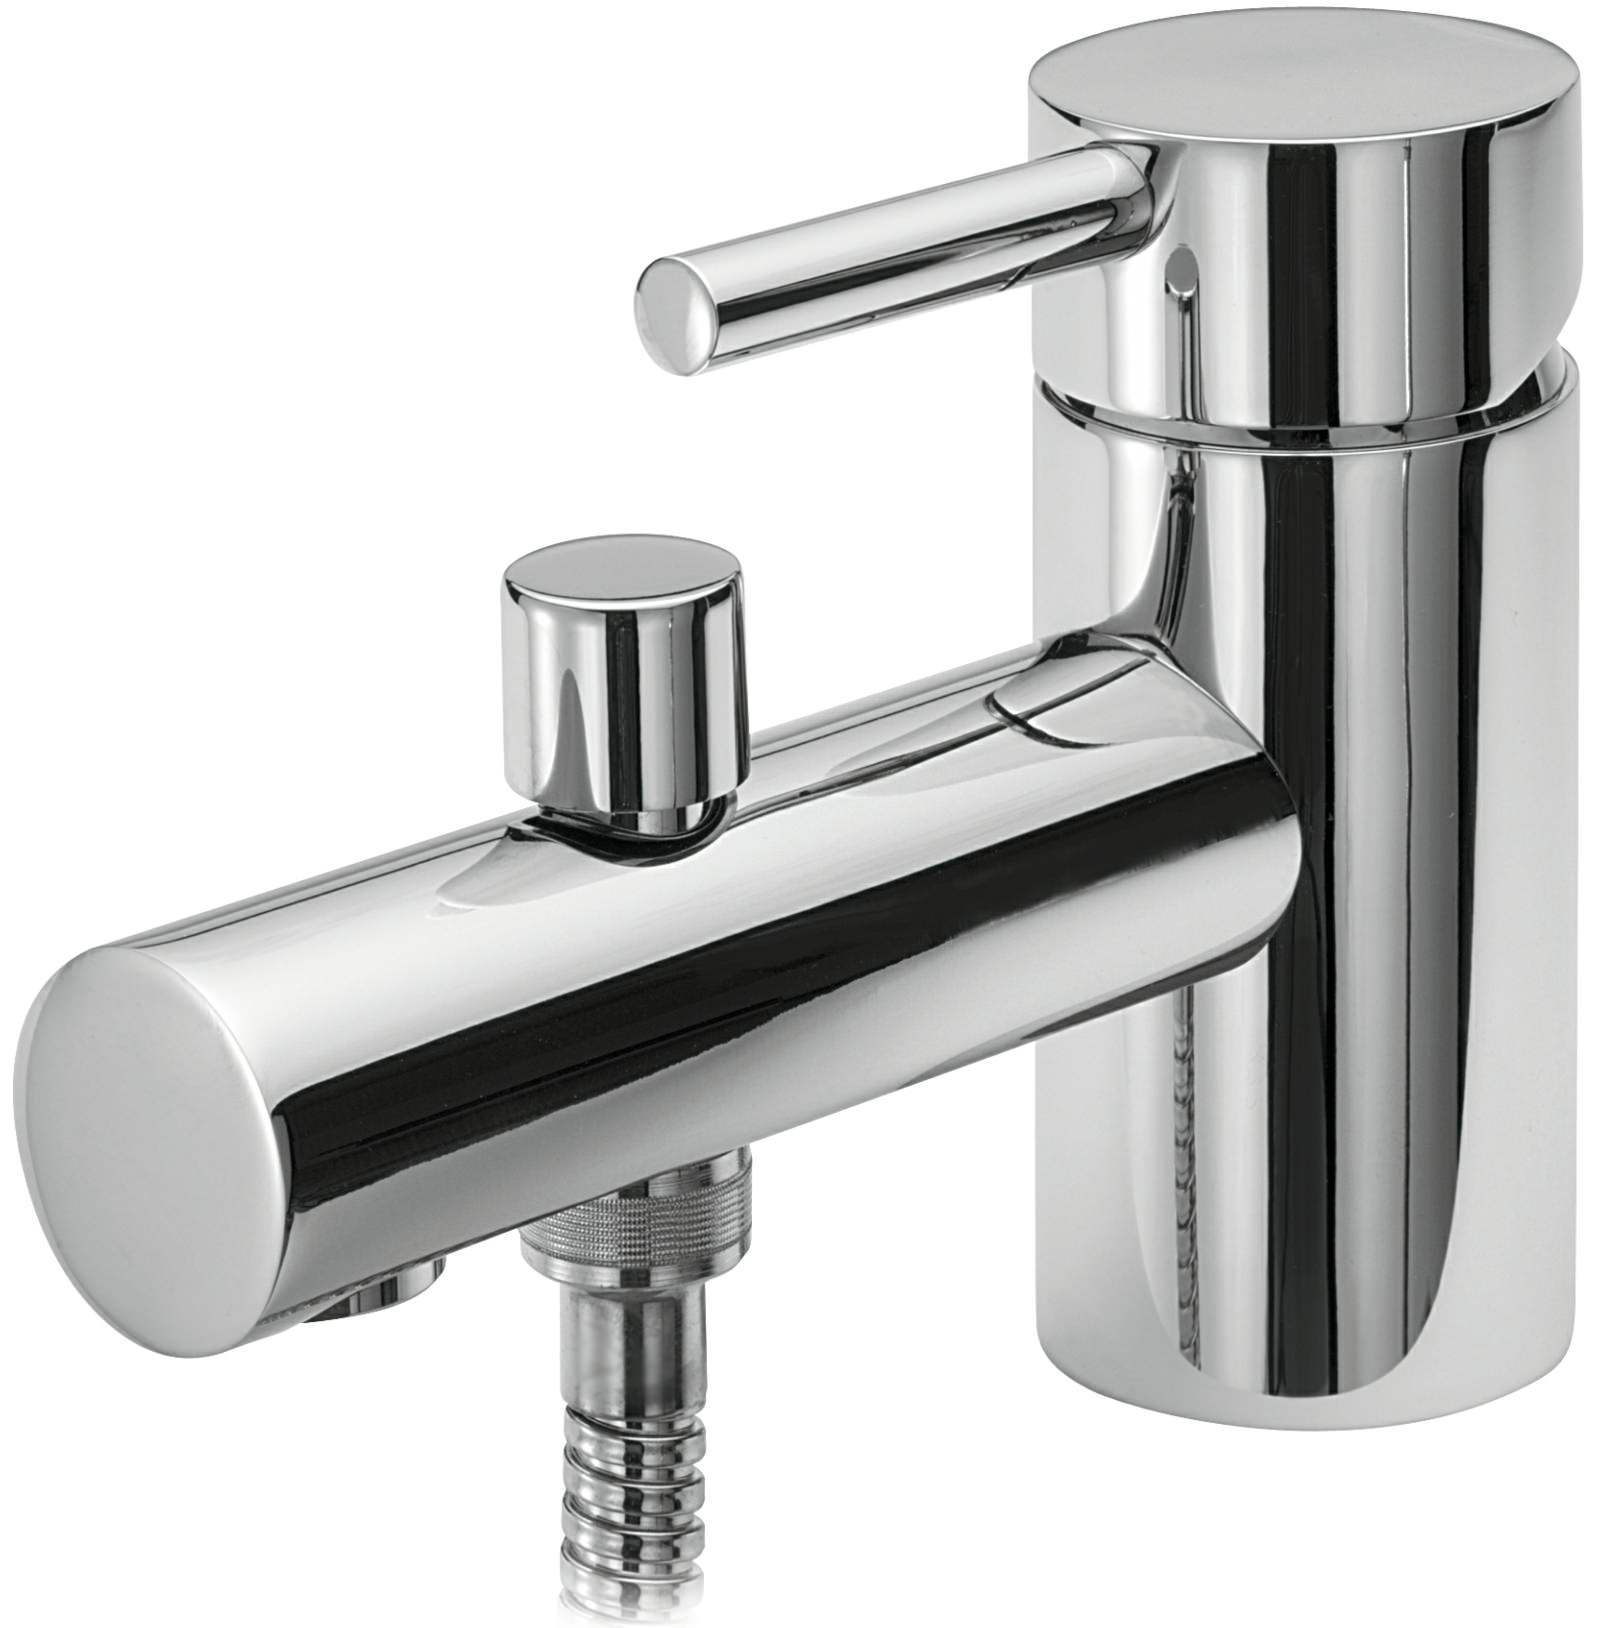 Sagittarius Piazza Monobloc Bath Shower Mixer Tap And Kit